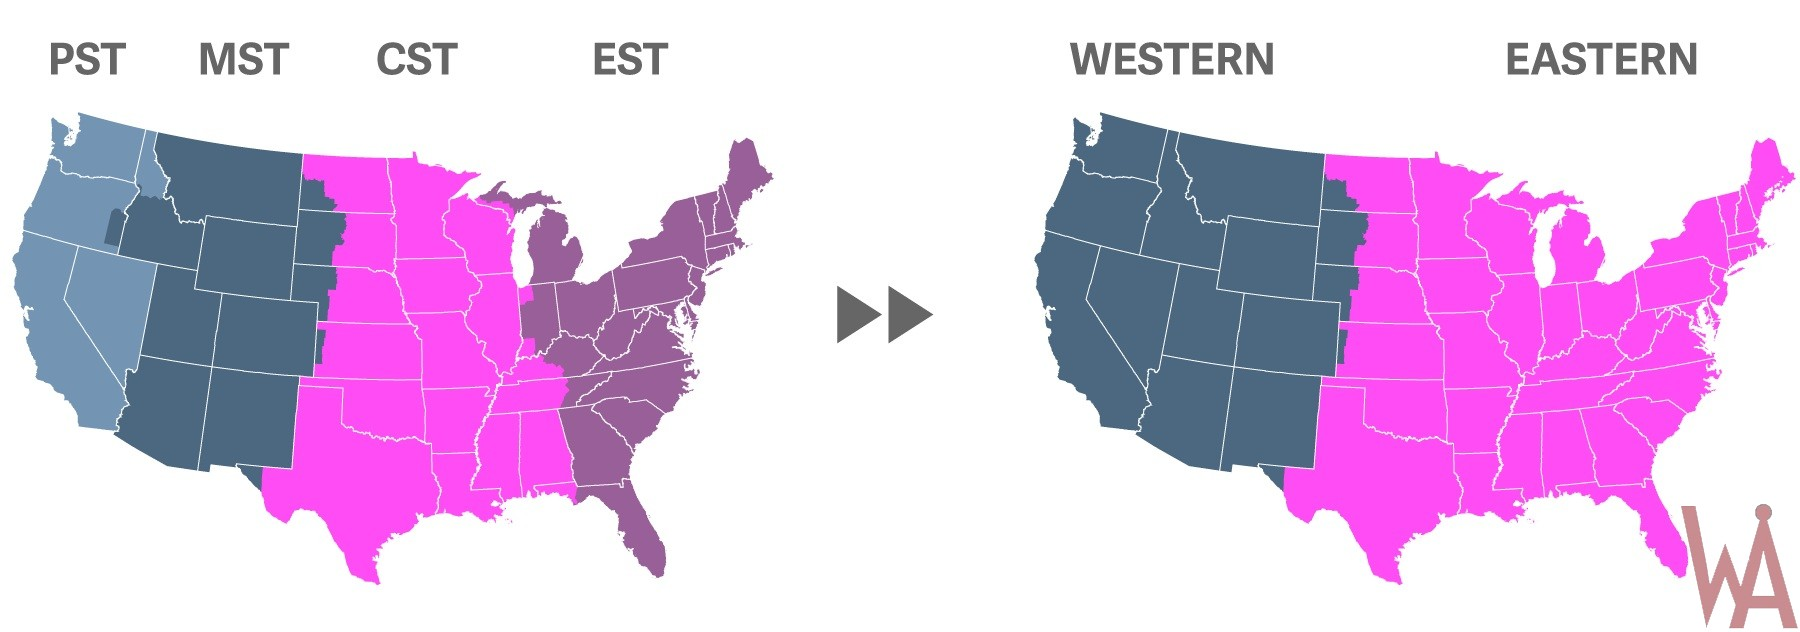 proposed time zones map of the USA